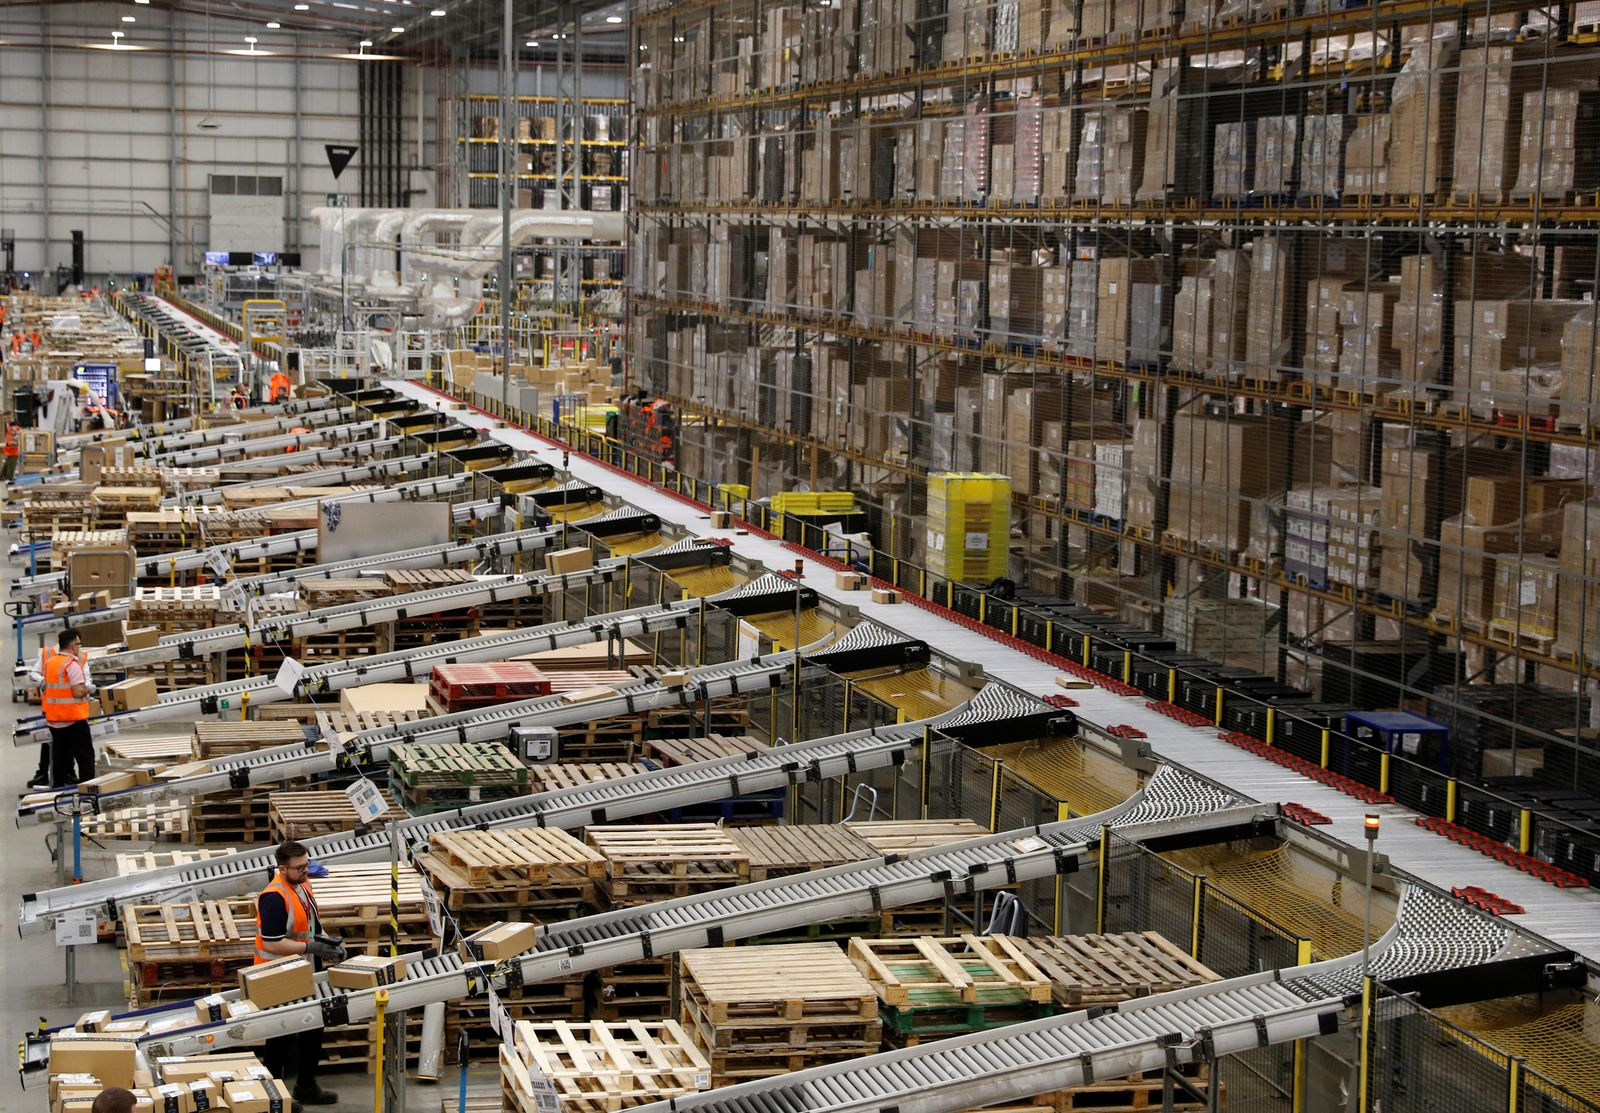 Workers sort parcels at Amazon's fulfilment centre in Peterborough